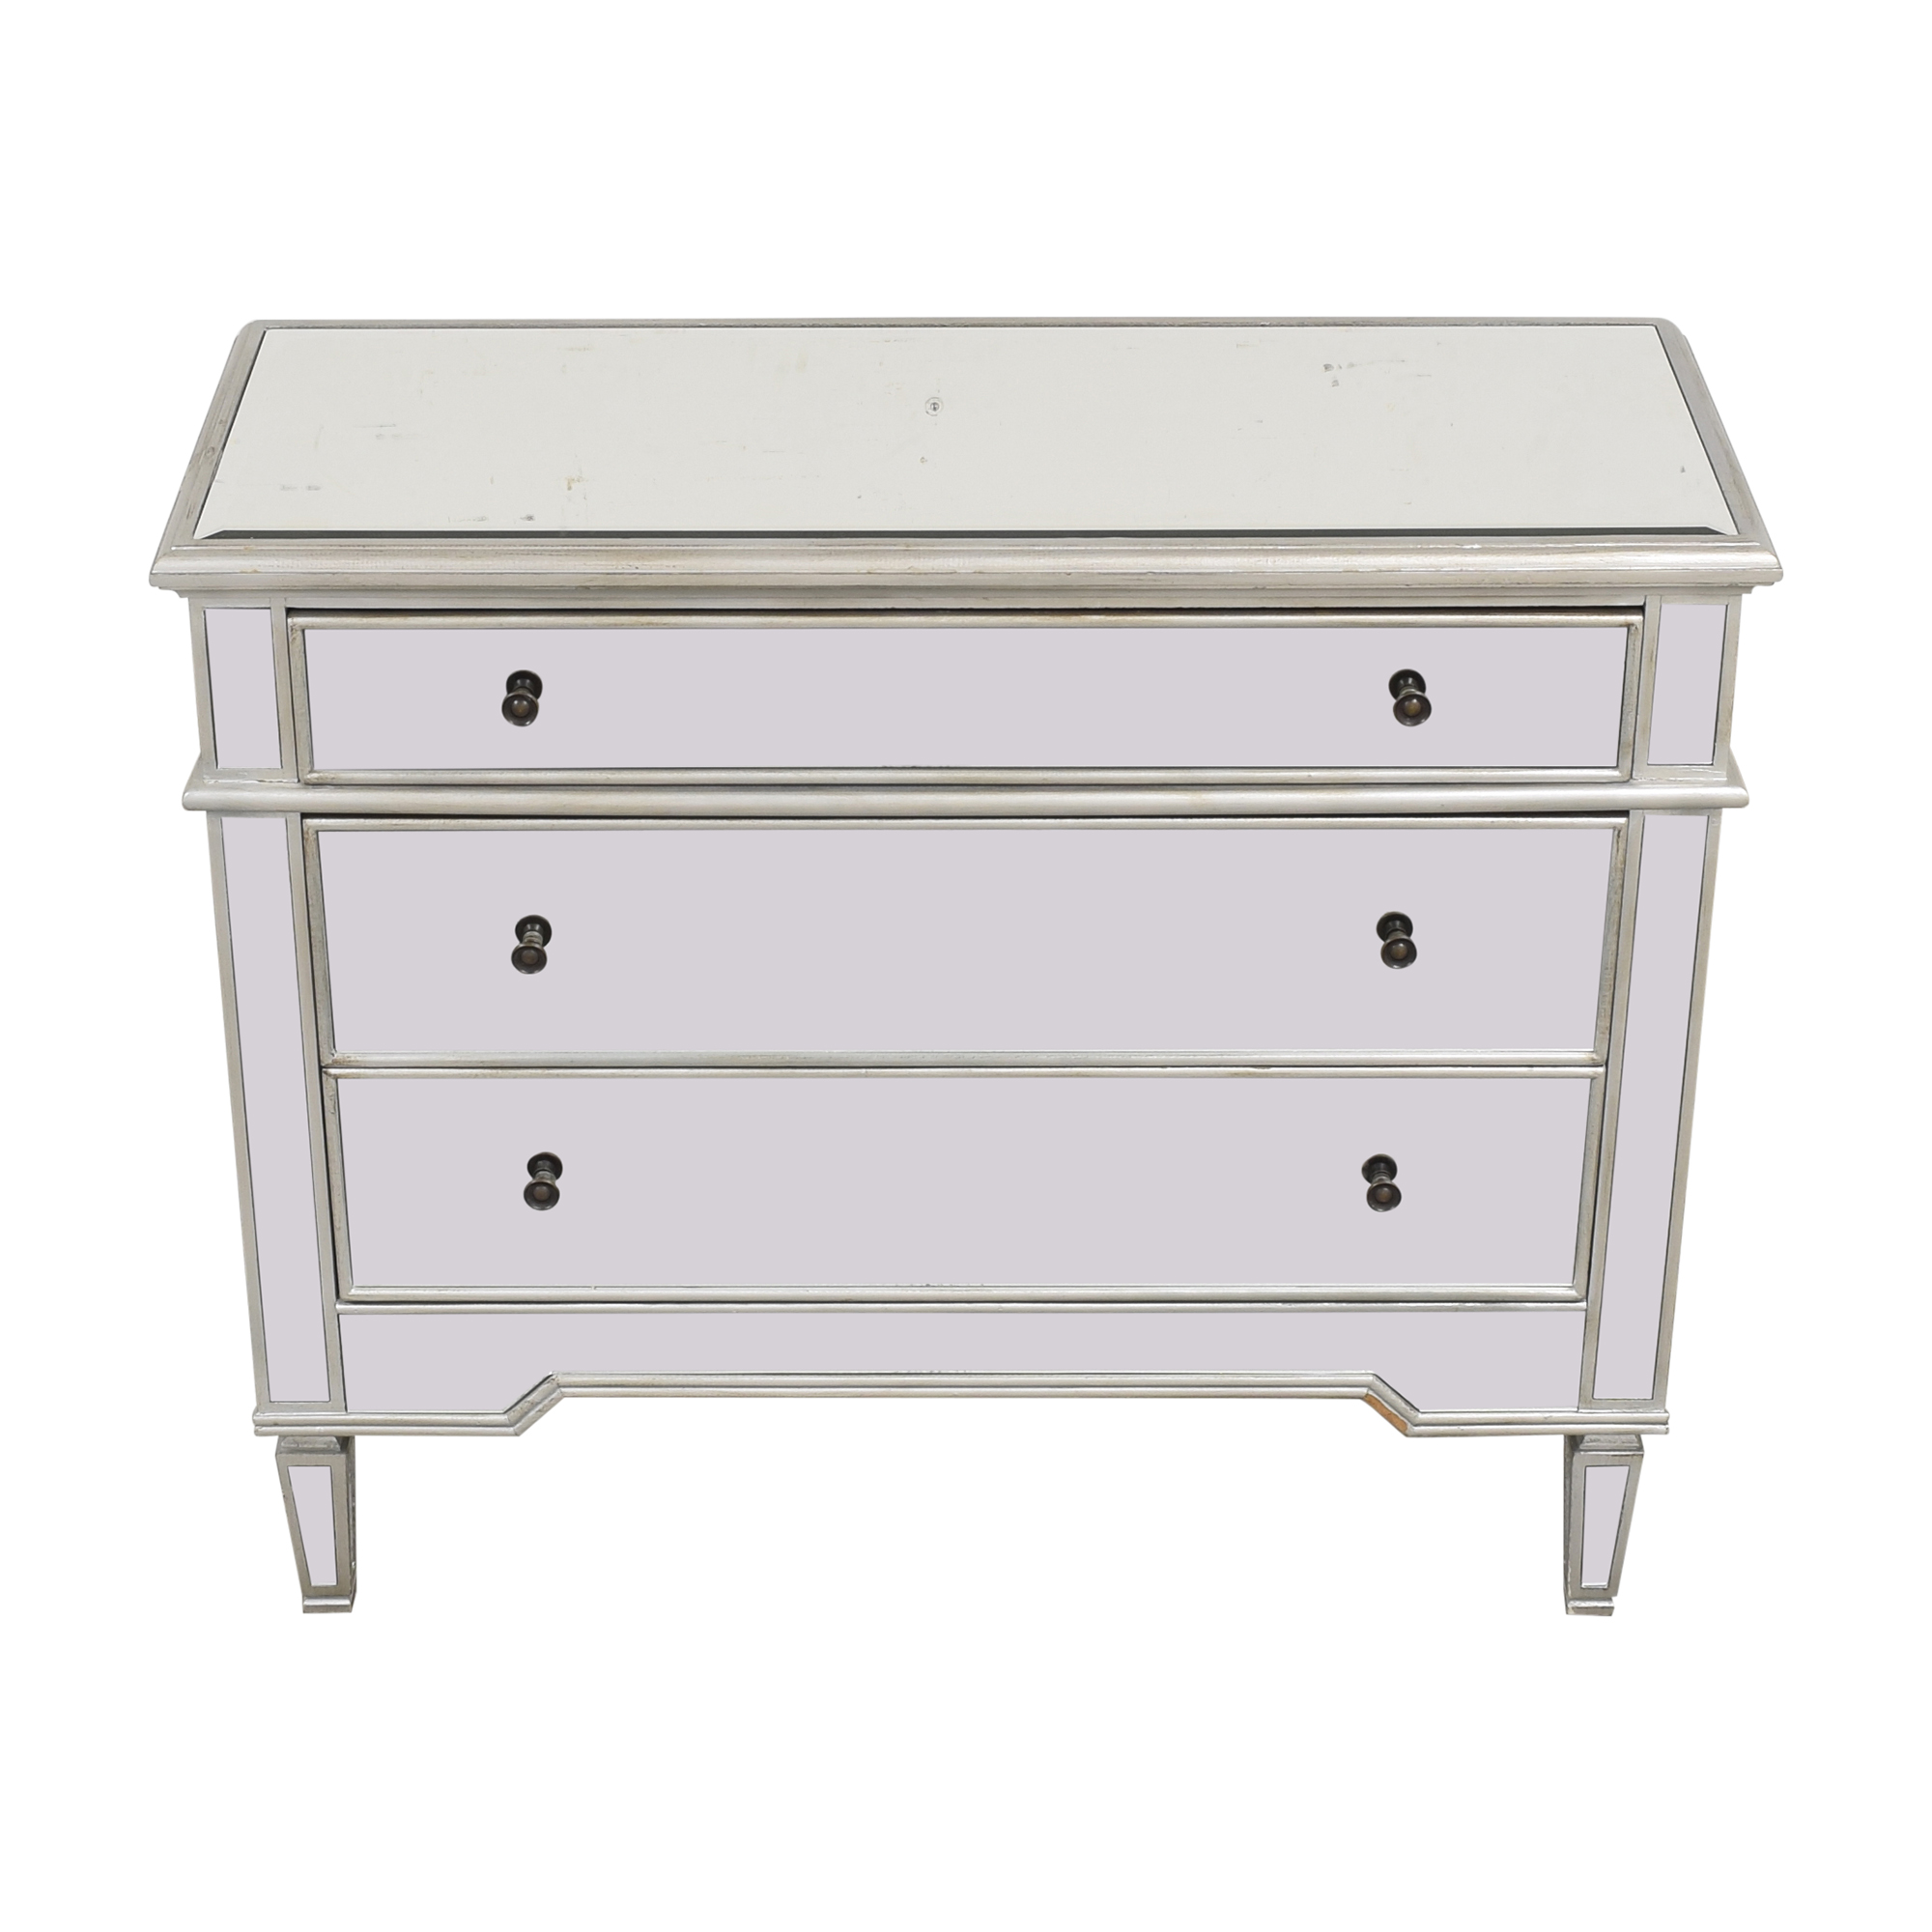 shop Josephine Wide 3-Drawer Mirrored Accent Chest  Dressers